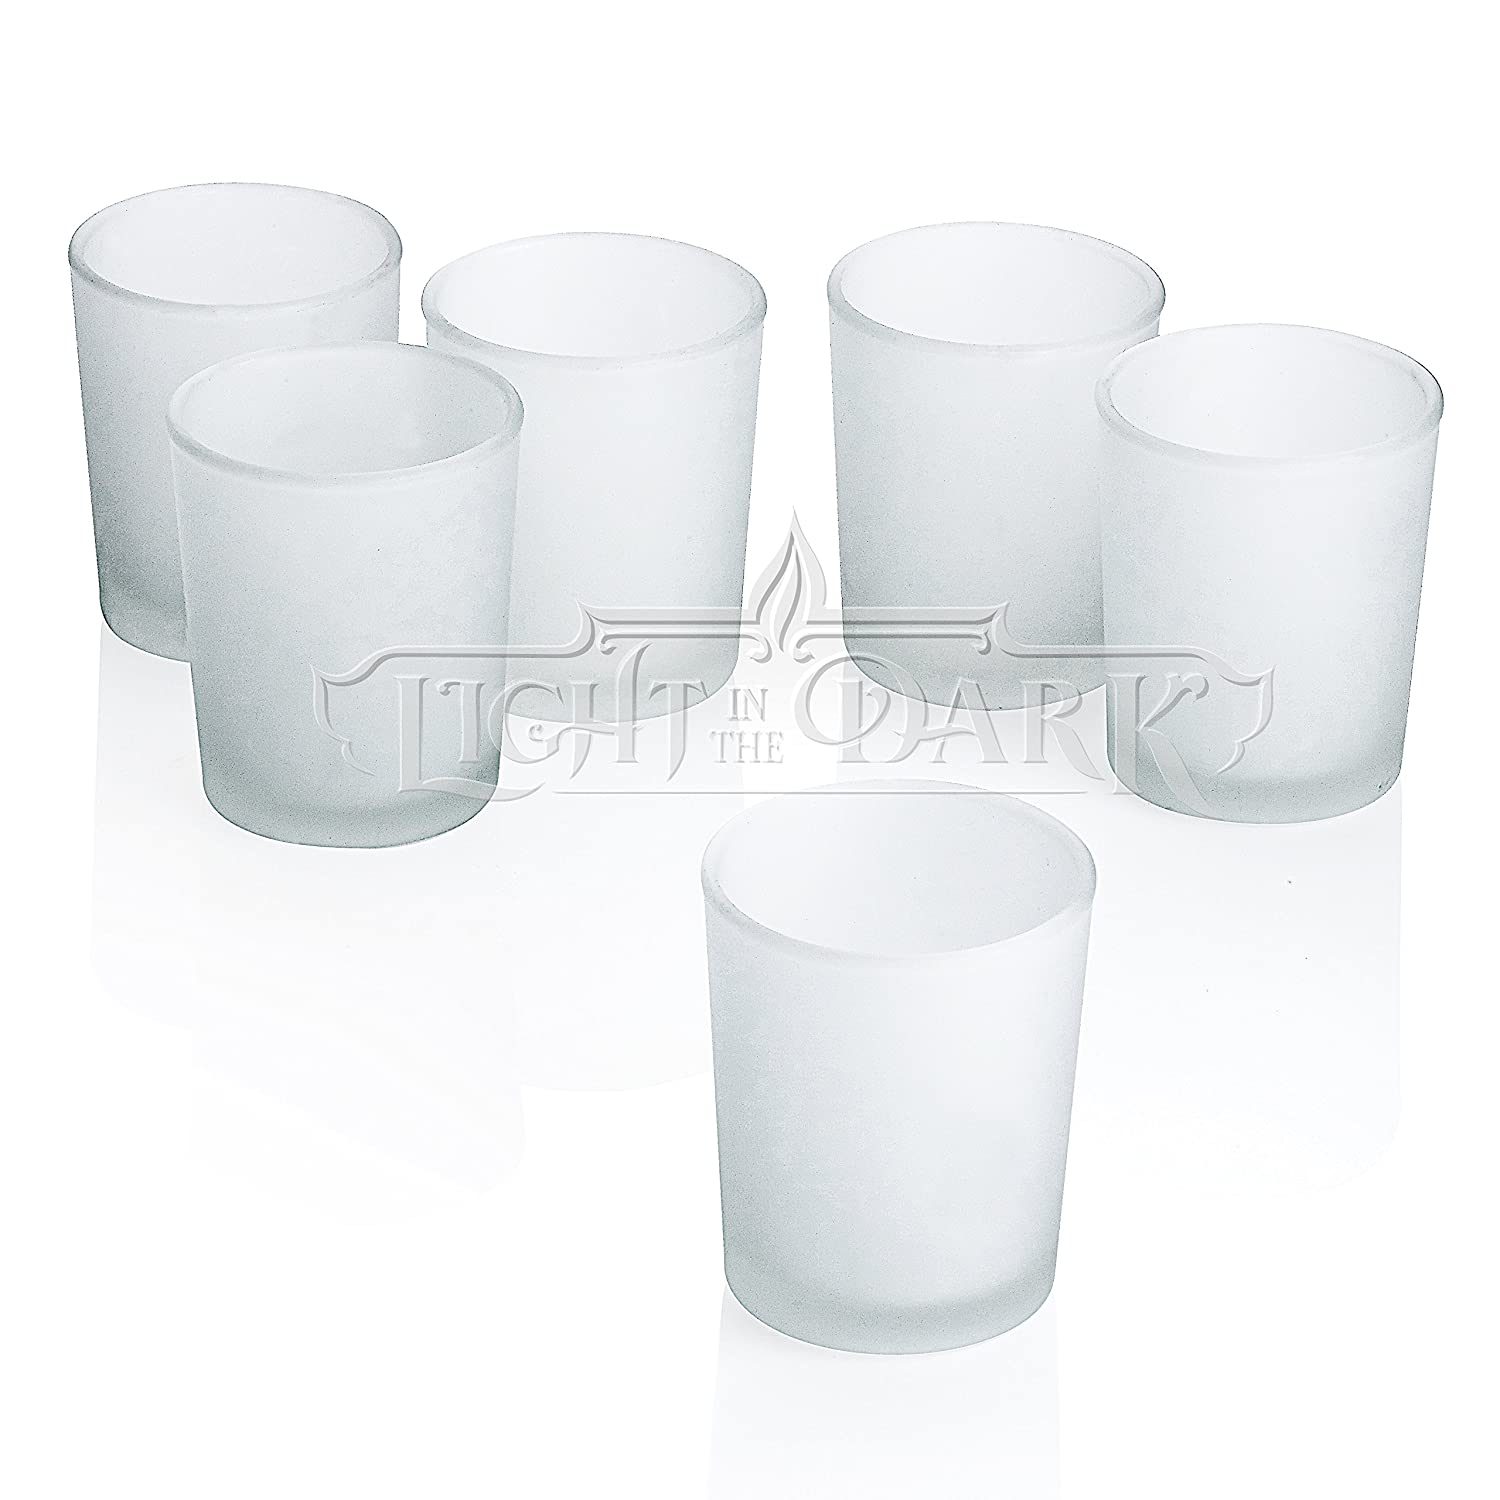 White Light In The Dark Clear Glass Square Votive Candle Holders Set of 12 Lawn Garden